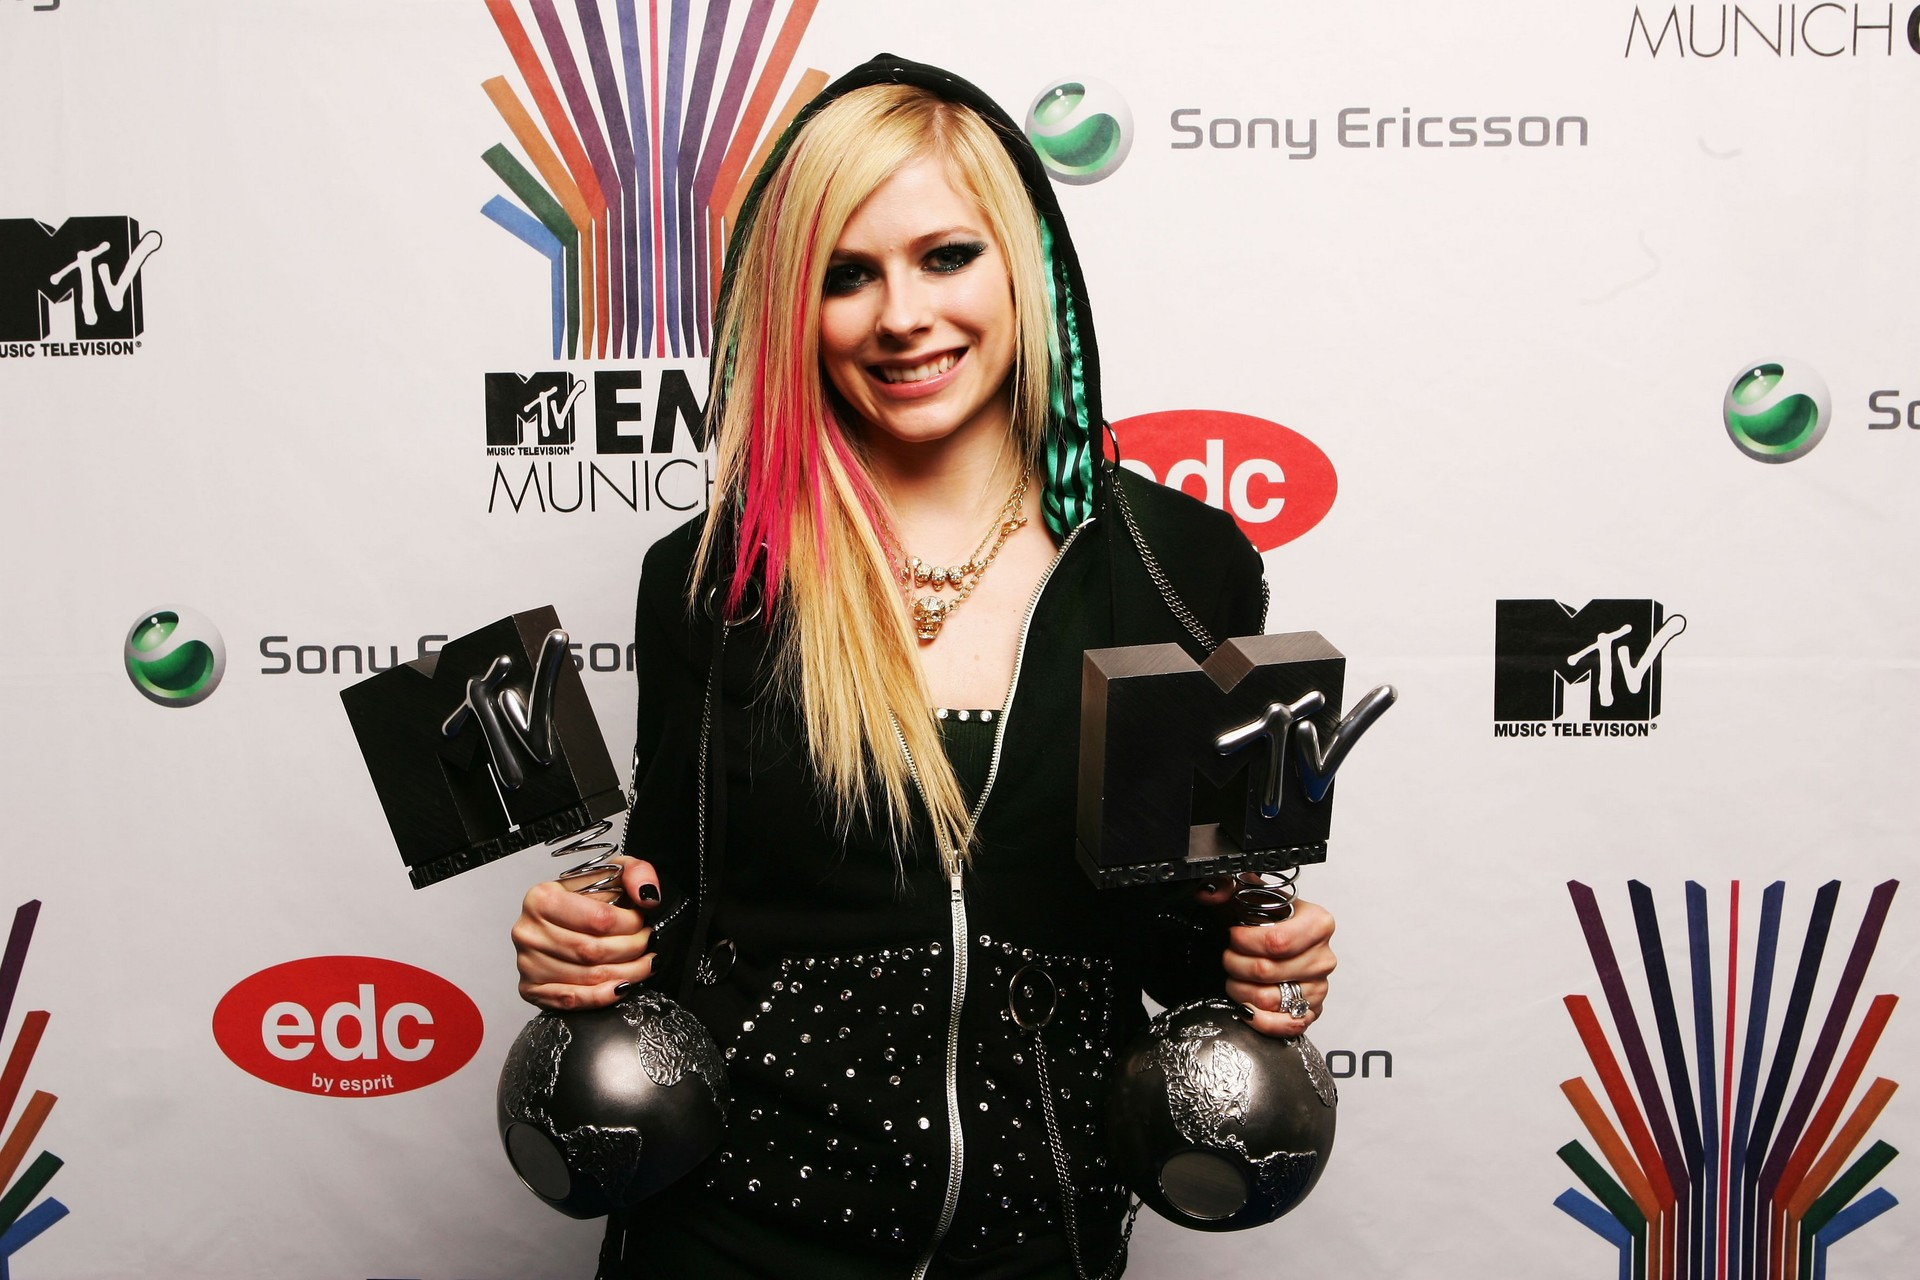 Awards Room At The MTV Europe Music Awards 2007